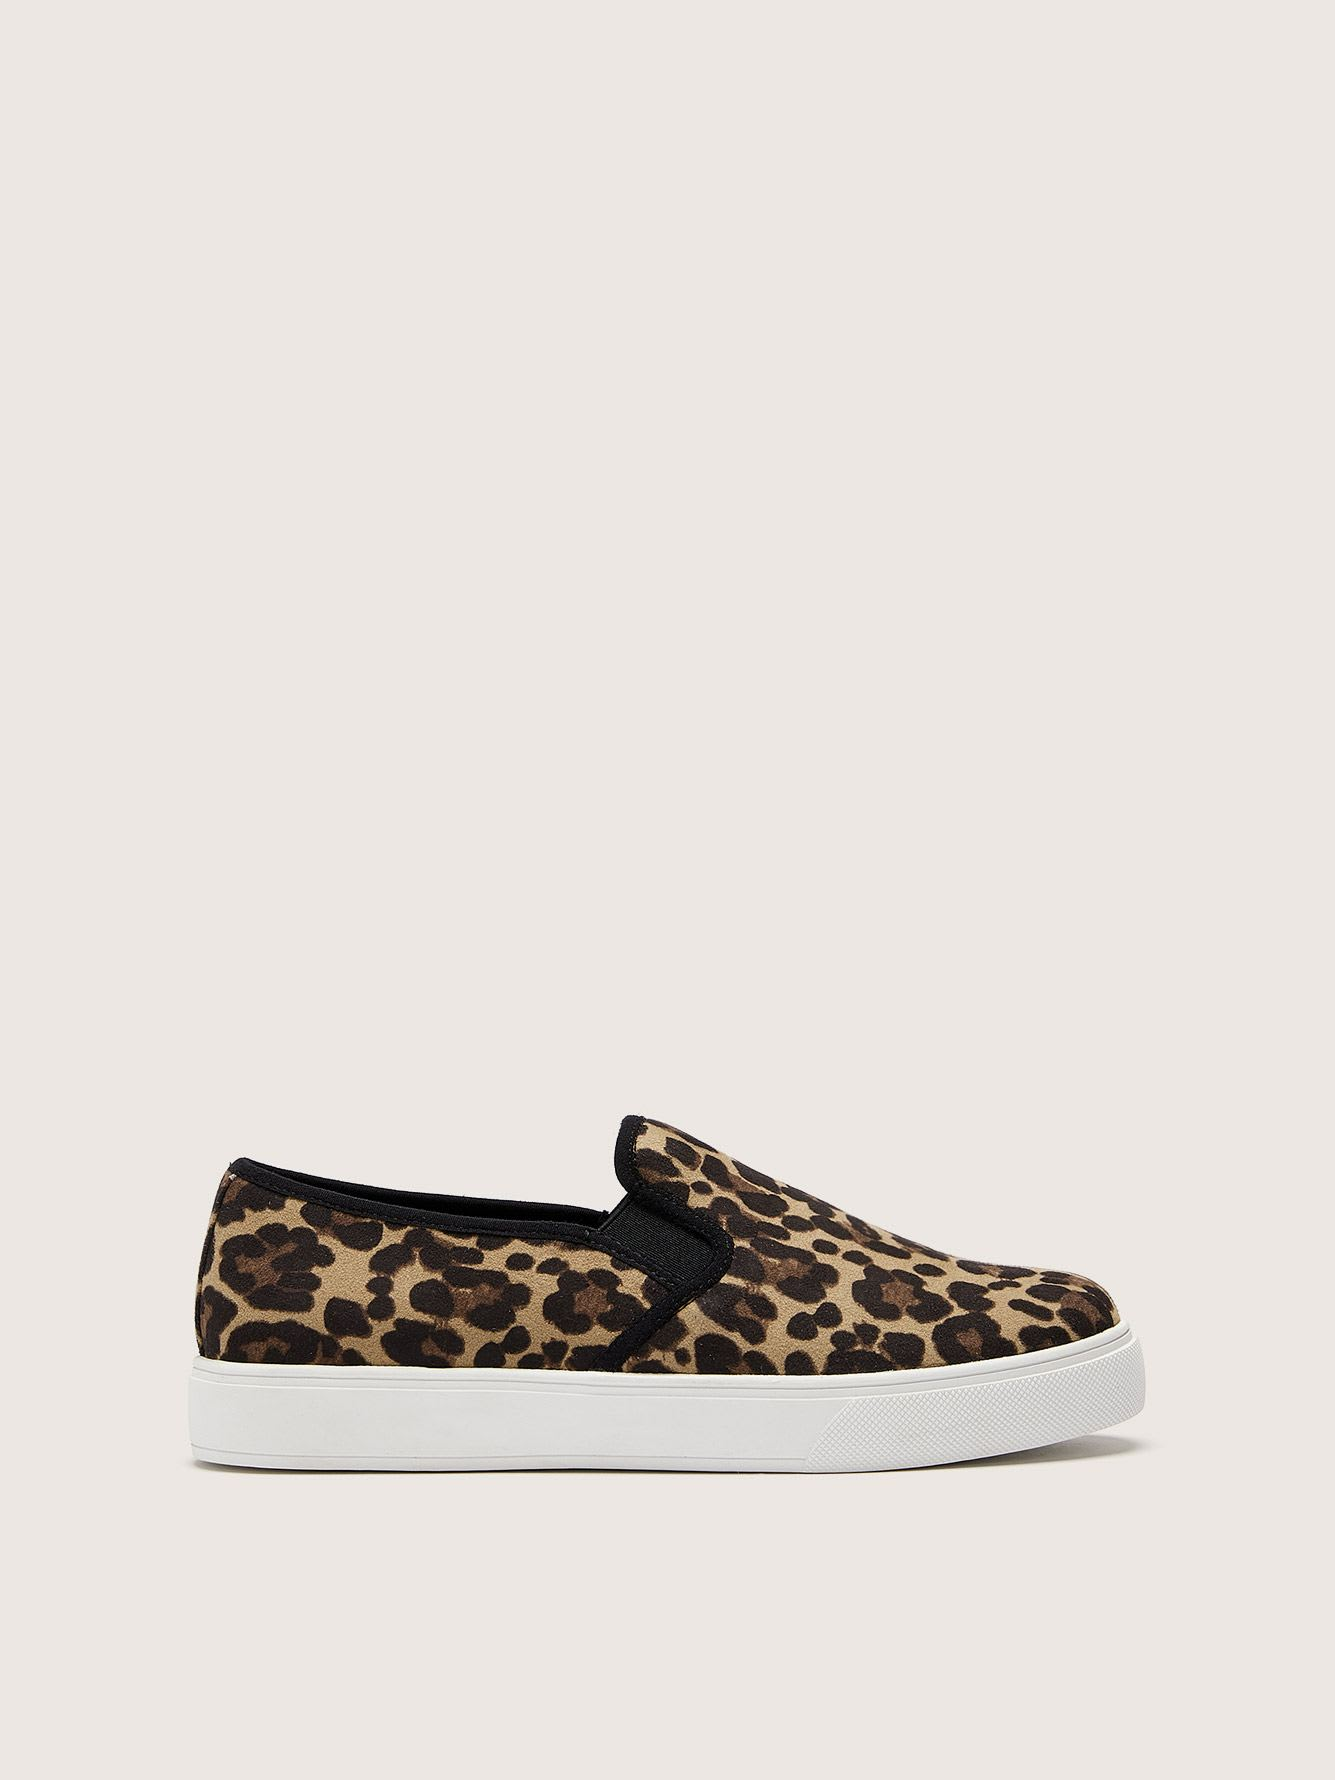 Wide Width Leopard Slip On Sneakers - In Every Story